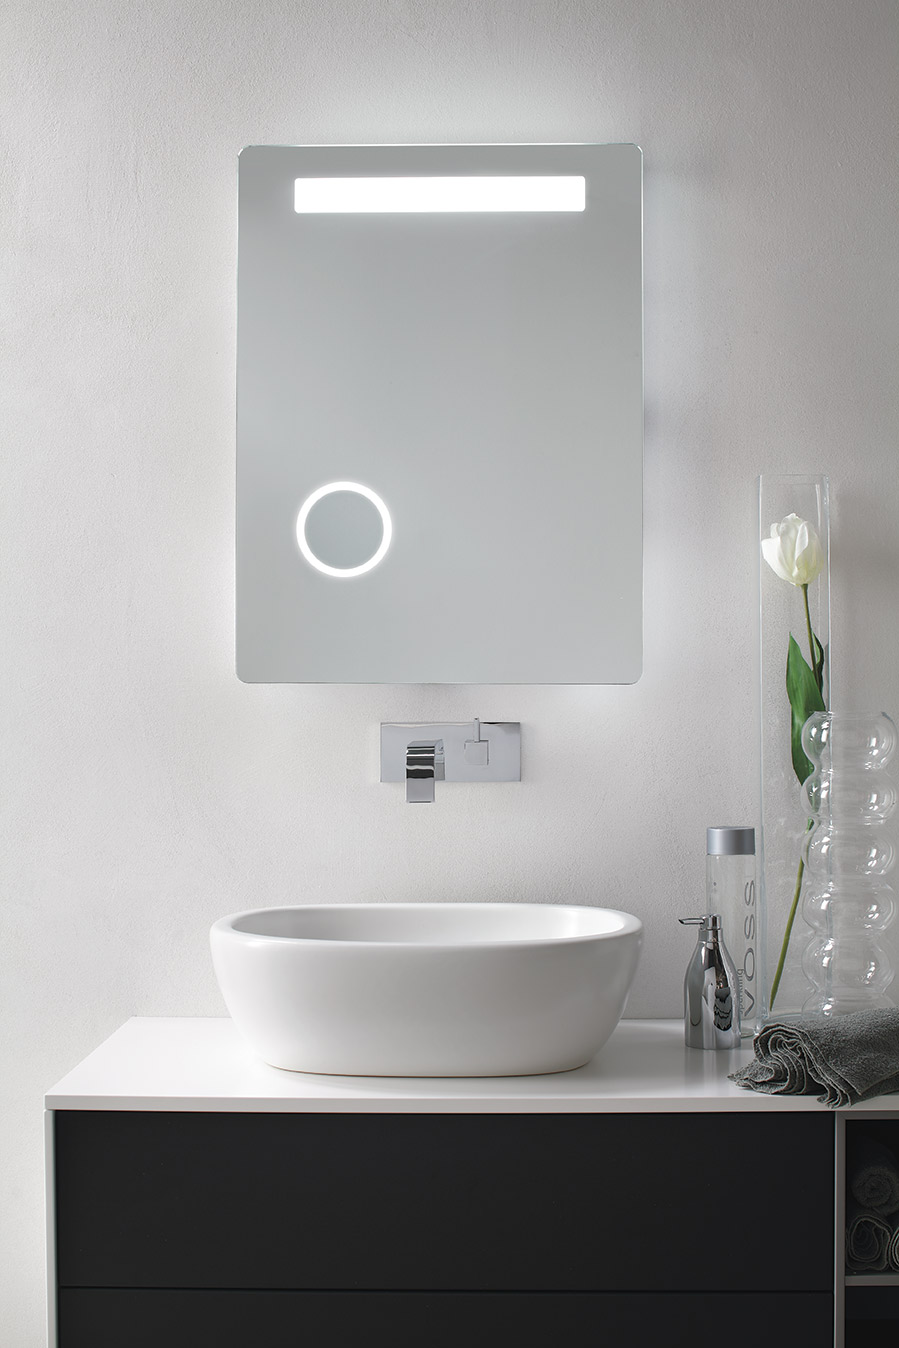 Buy Led Lighted Bathroom Makeup Mirror With Magnifier & Sensor Touch ...